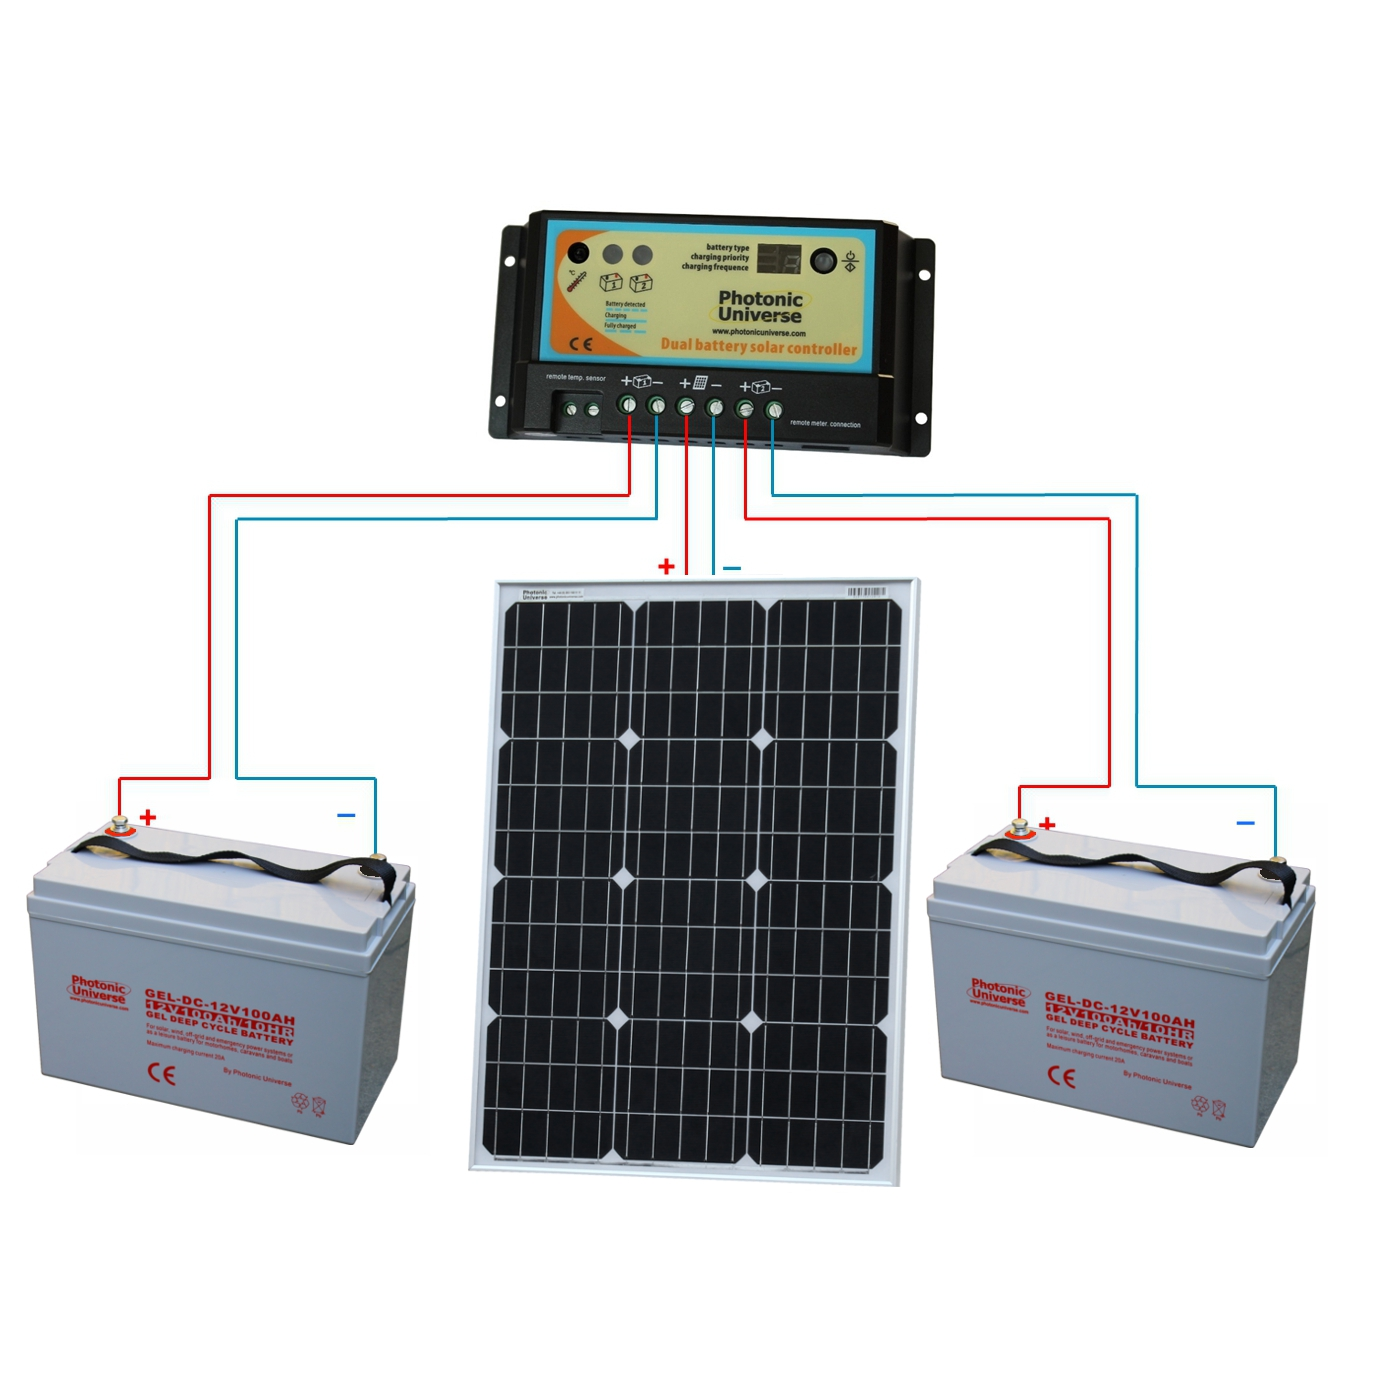 hight resolution of connection diagram for 60w 12v photonic universe dual battery solar charging kit